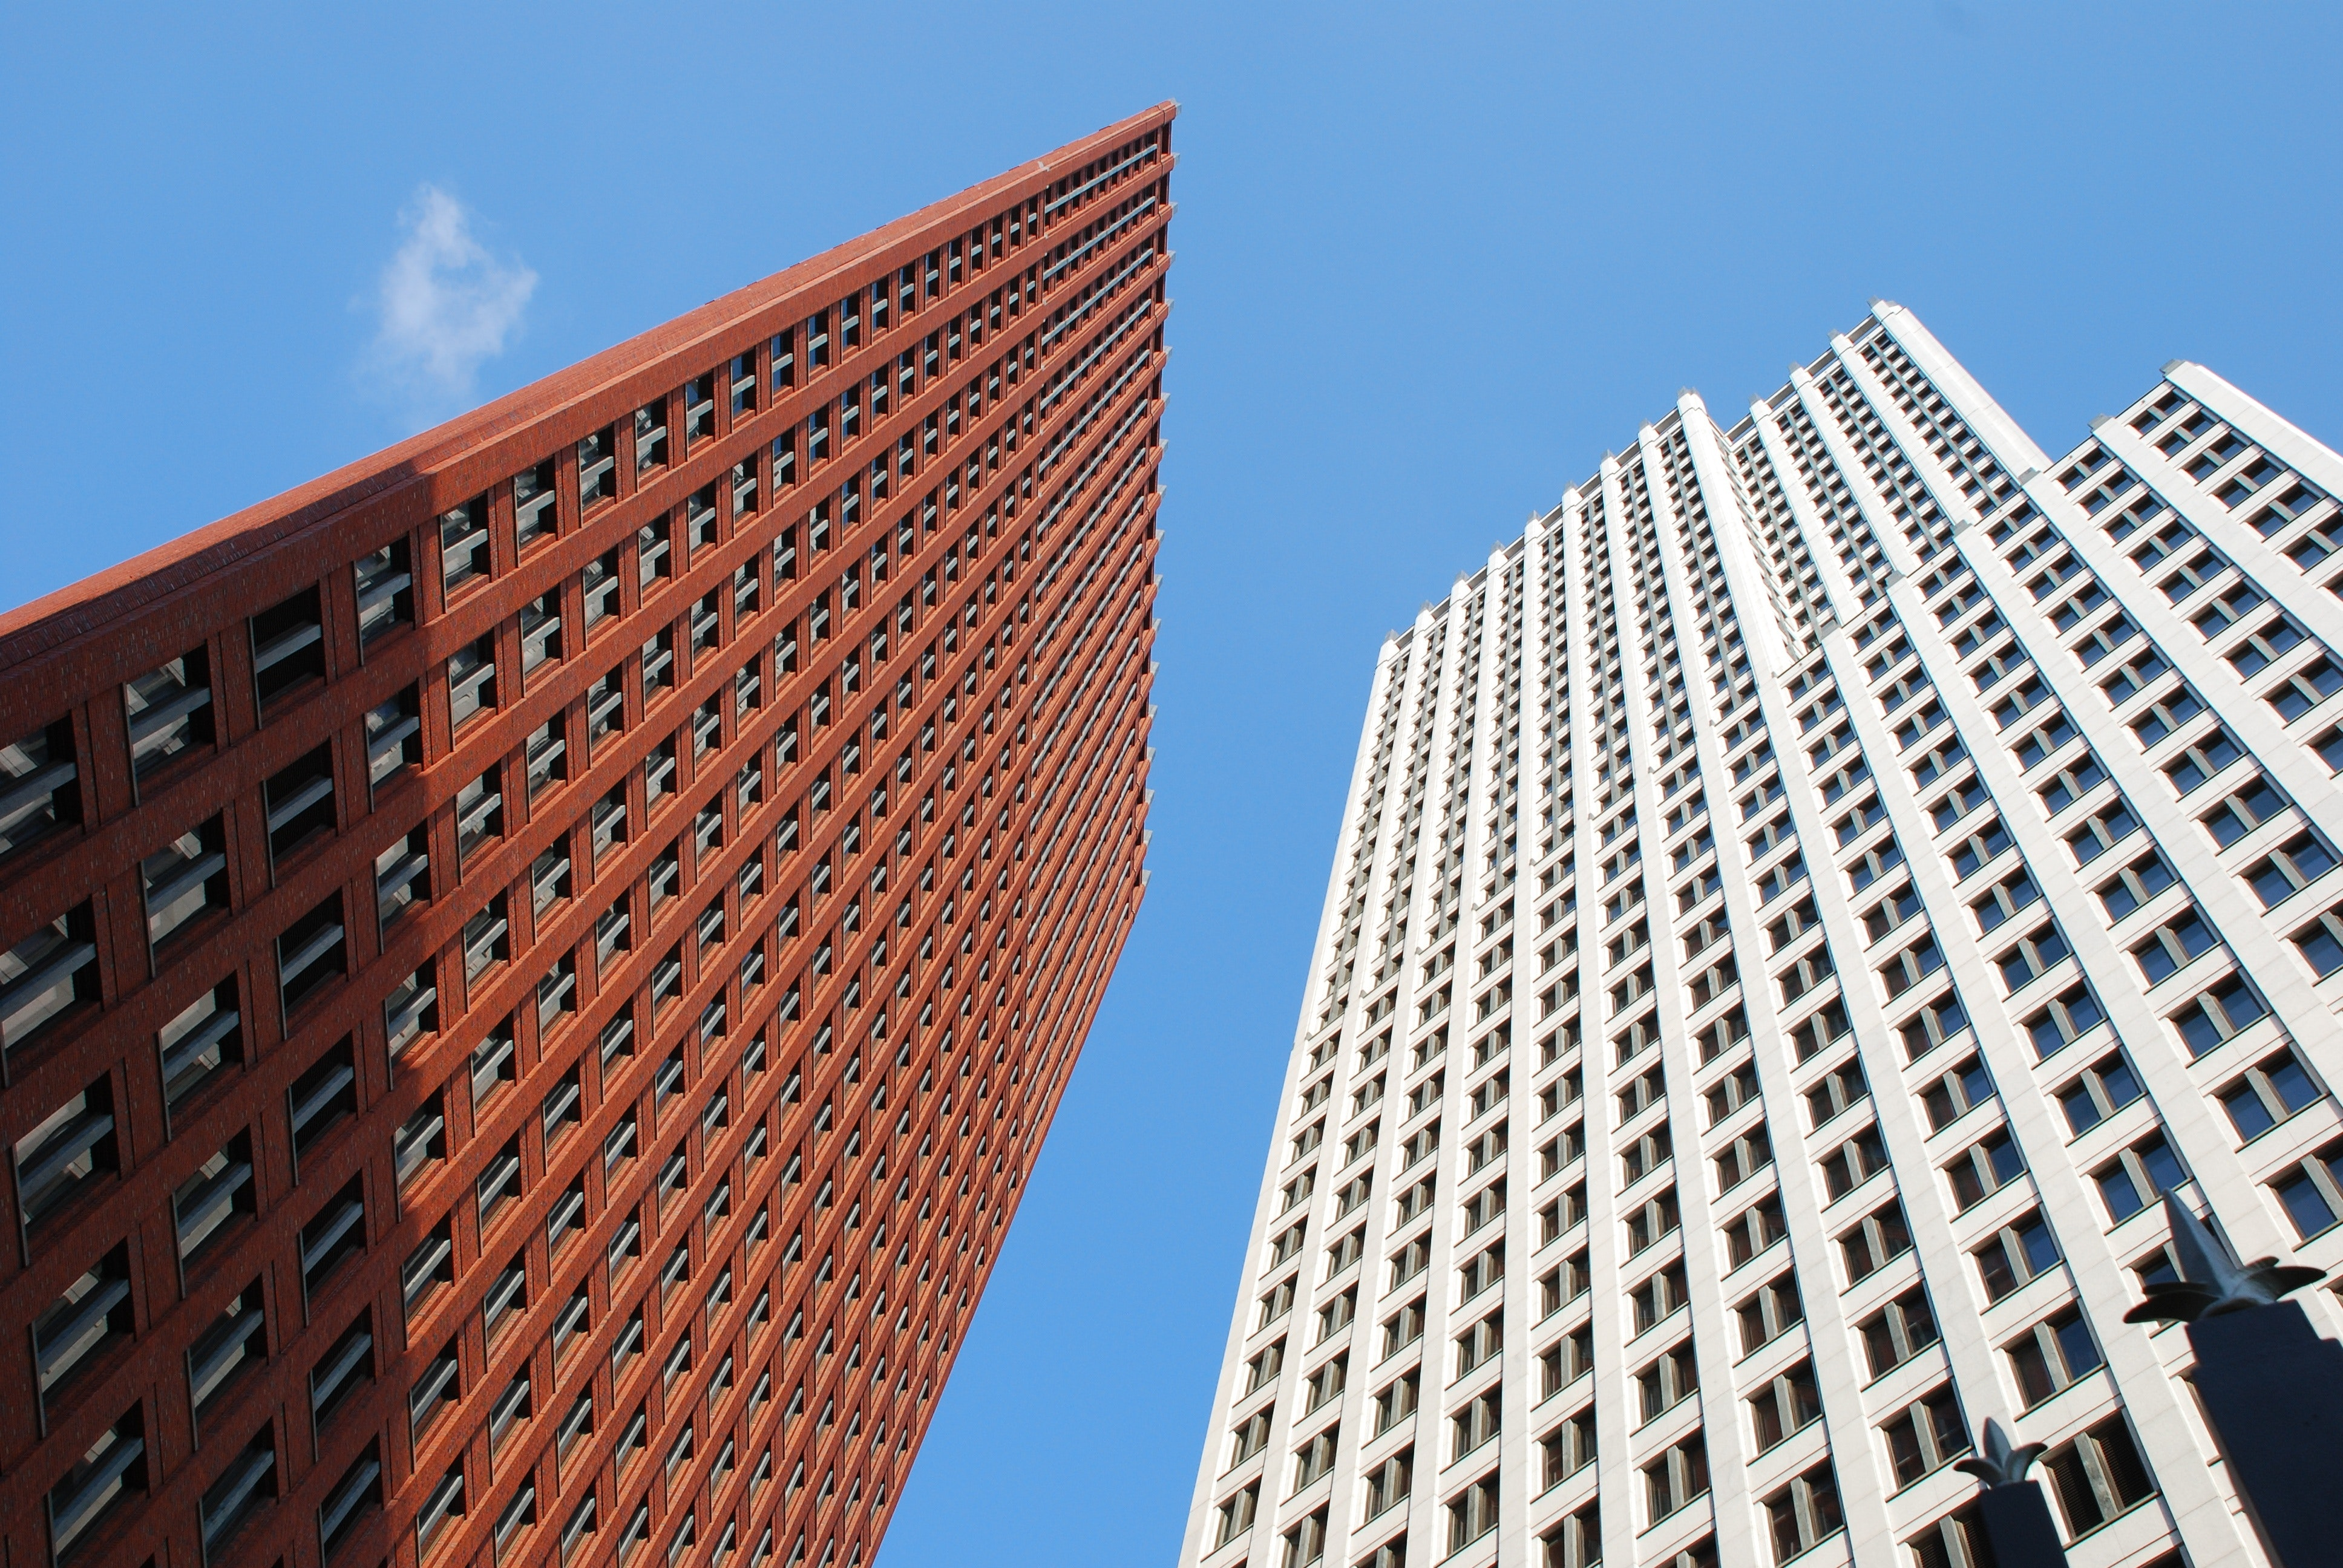 High Rise Building during Clear Blue Sky · Free Stock Photo